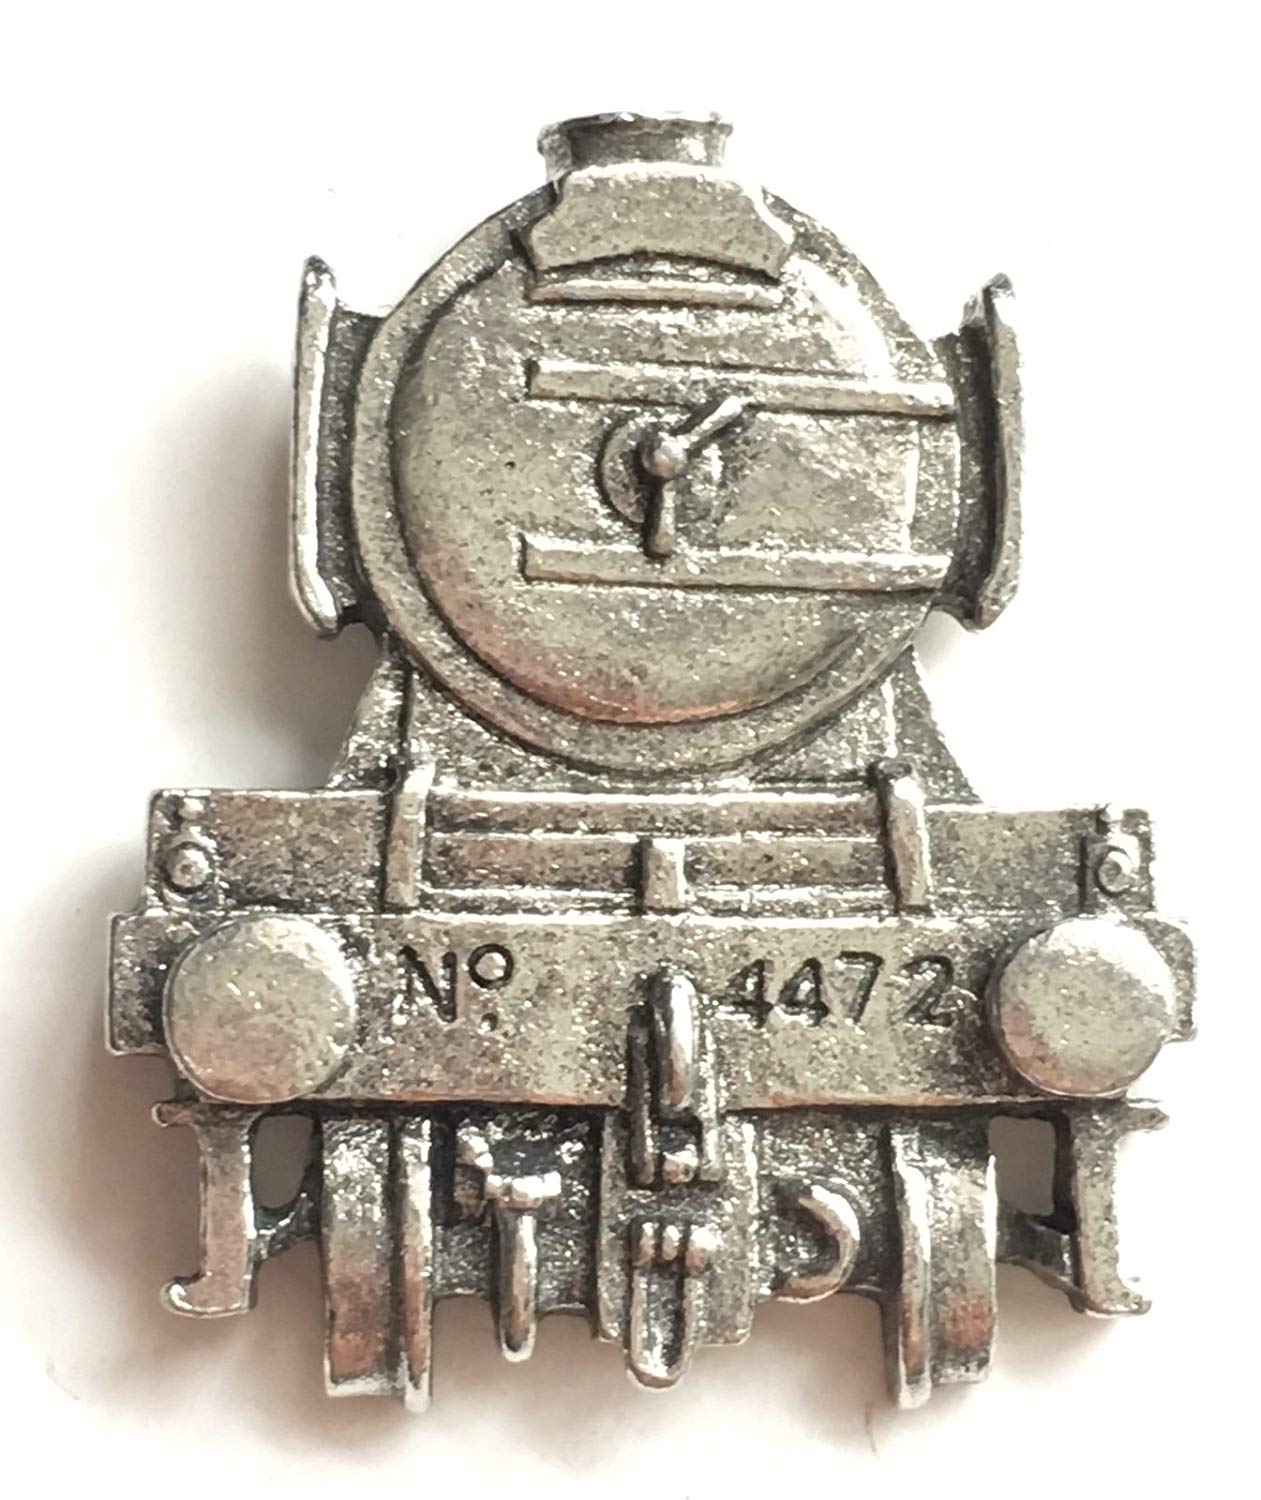 Fine Pewter Flying Scotsman Train Front View Pin Badge with Gift Pouch